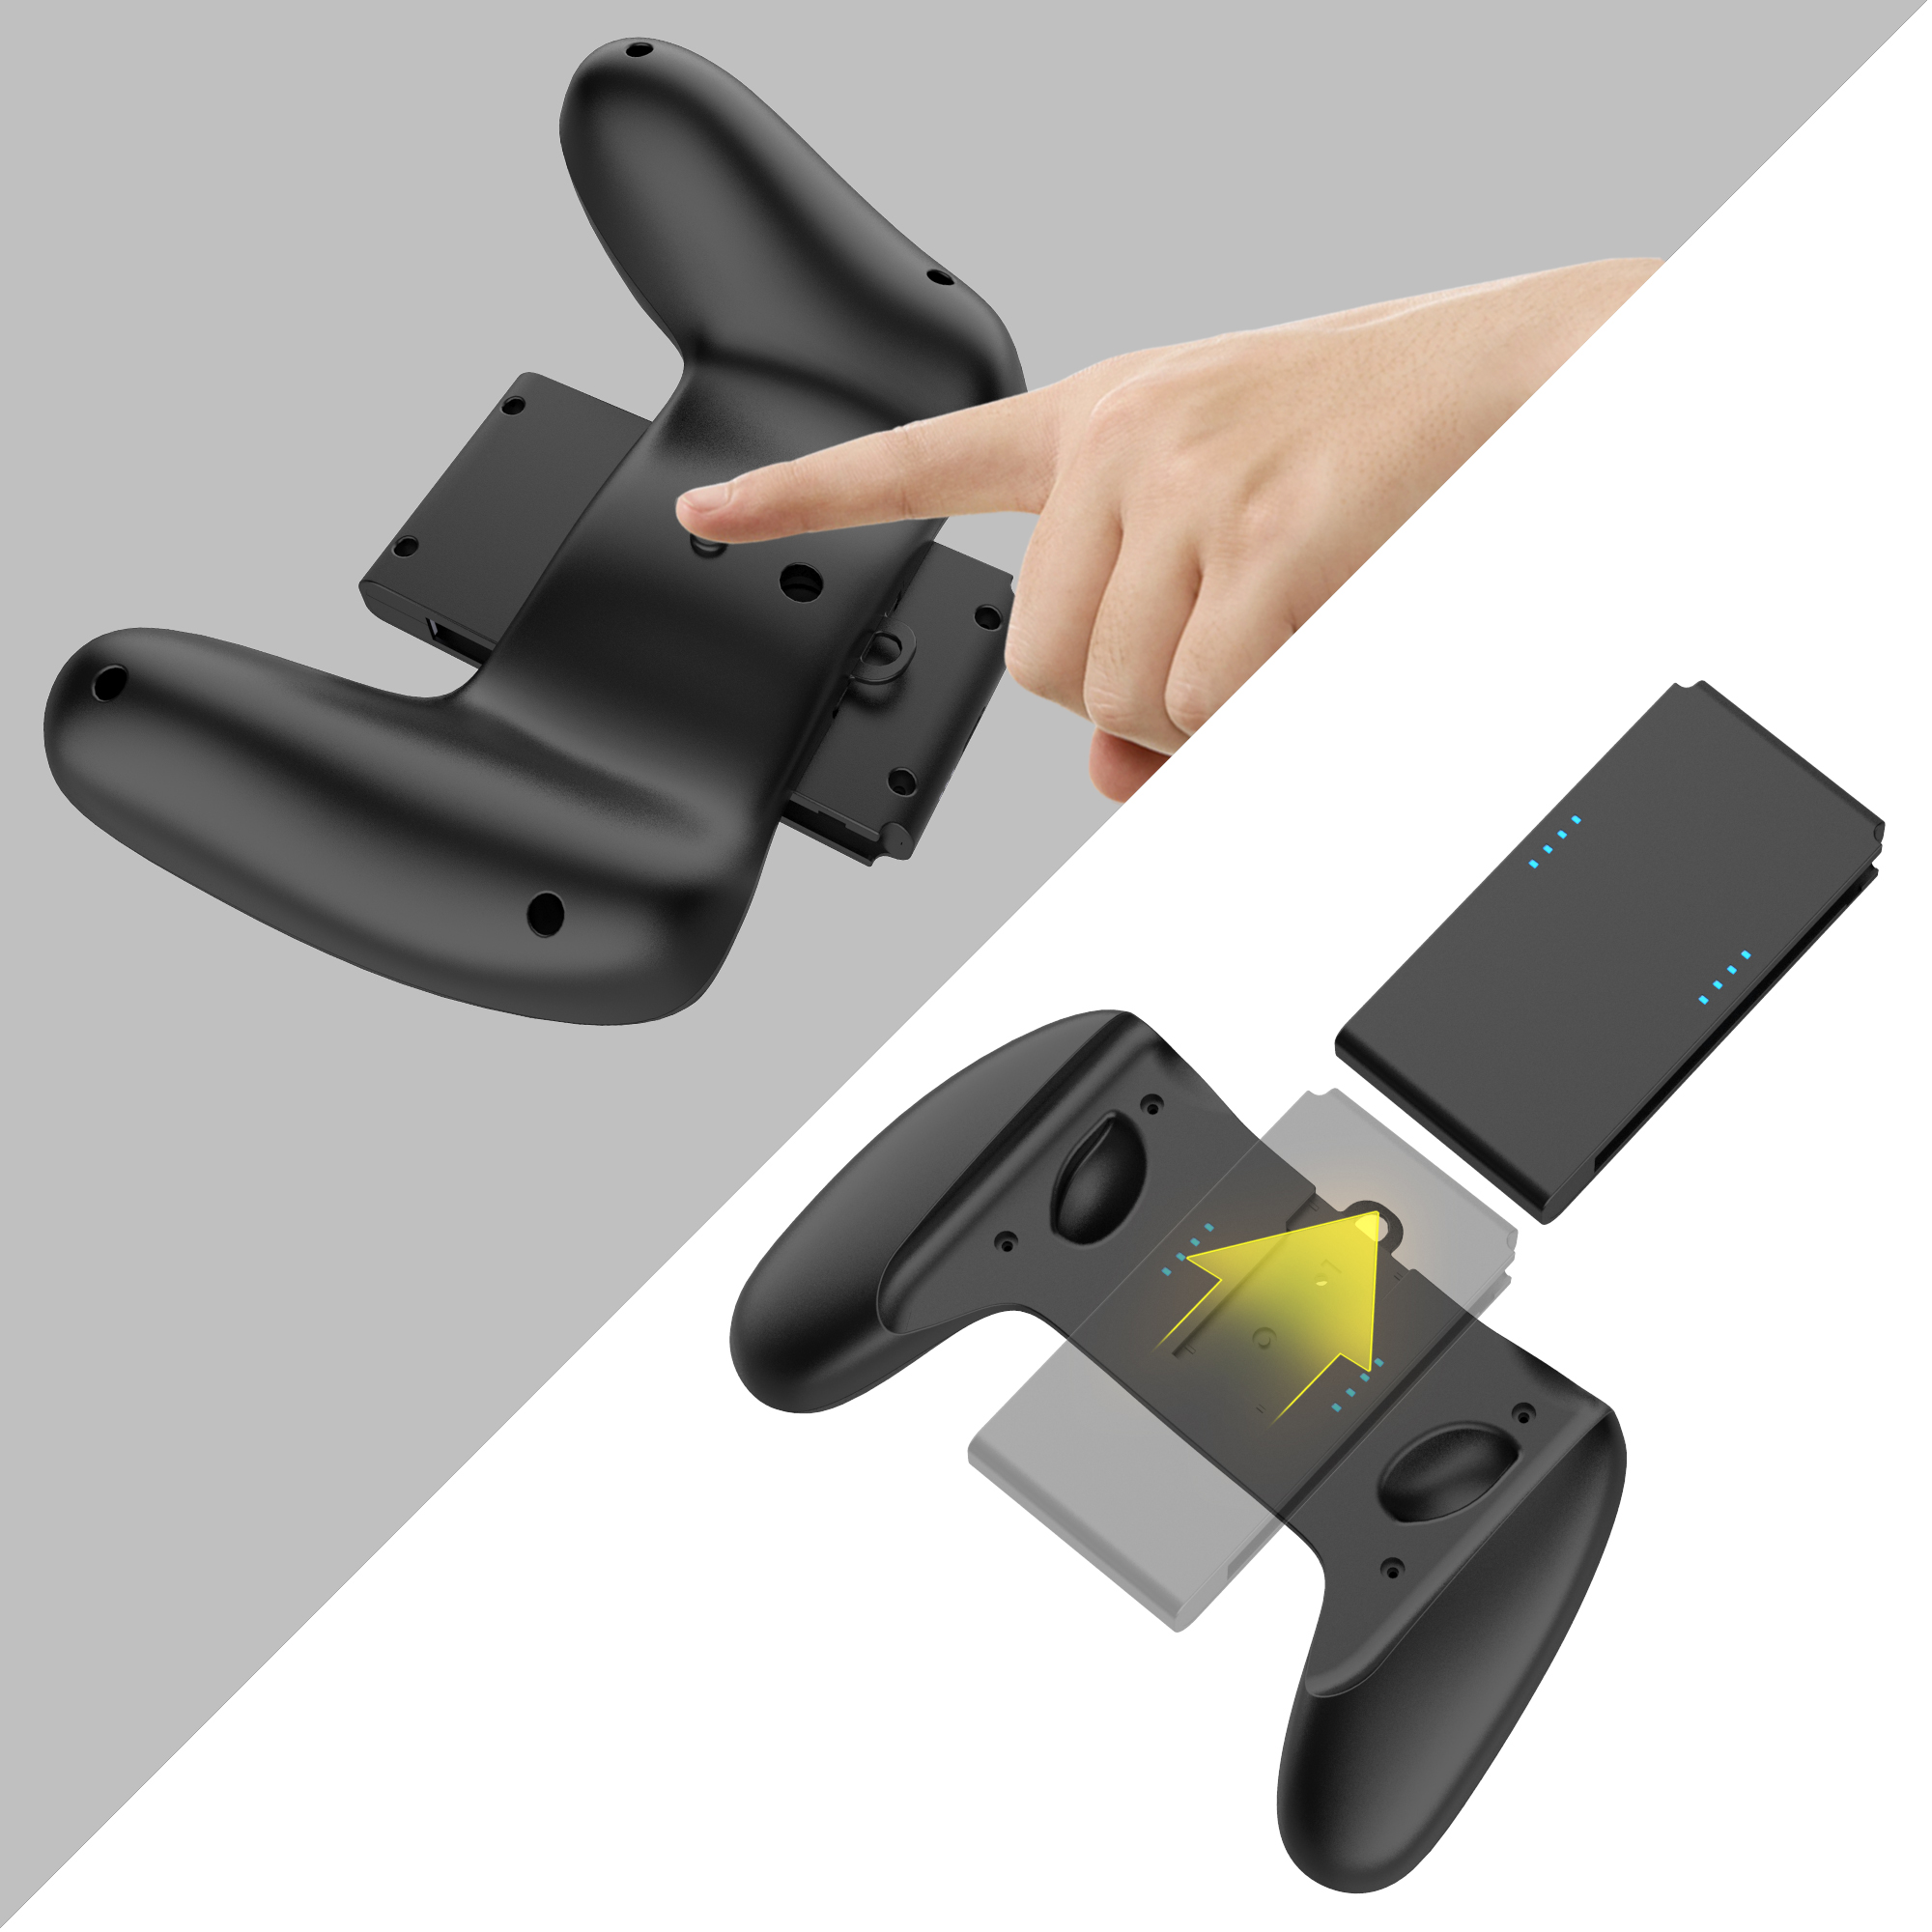 3in1 JOYCON Grip for Nintendo Switch